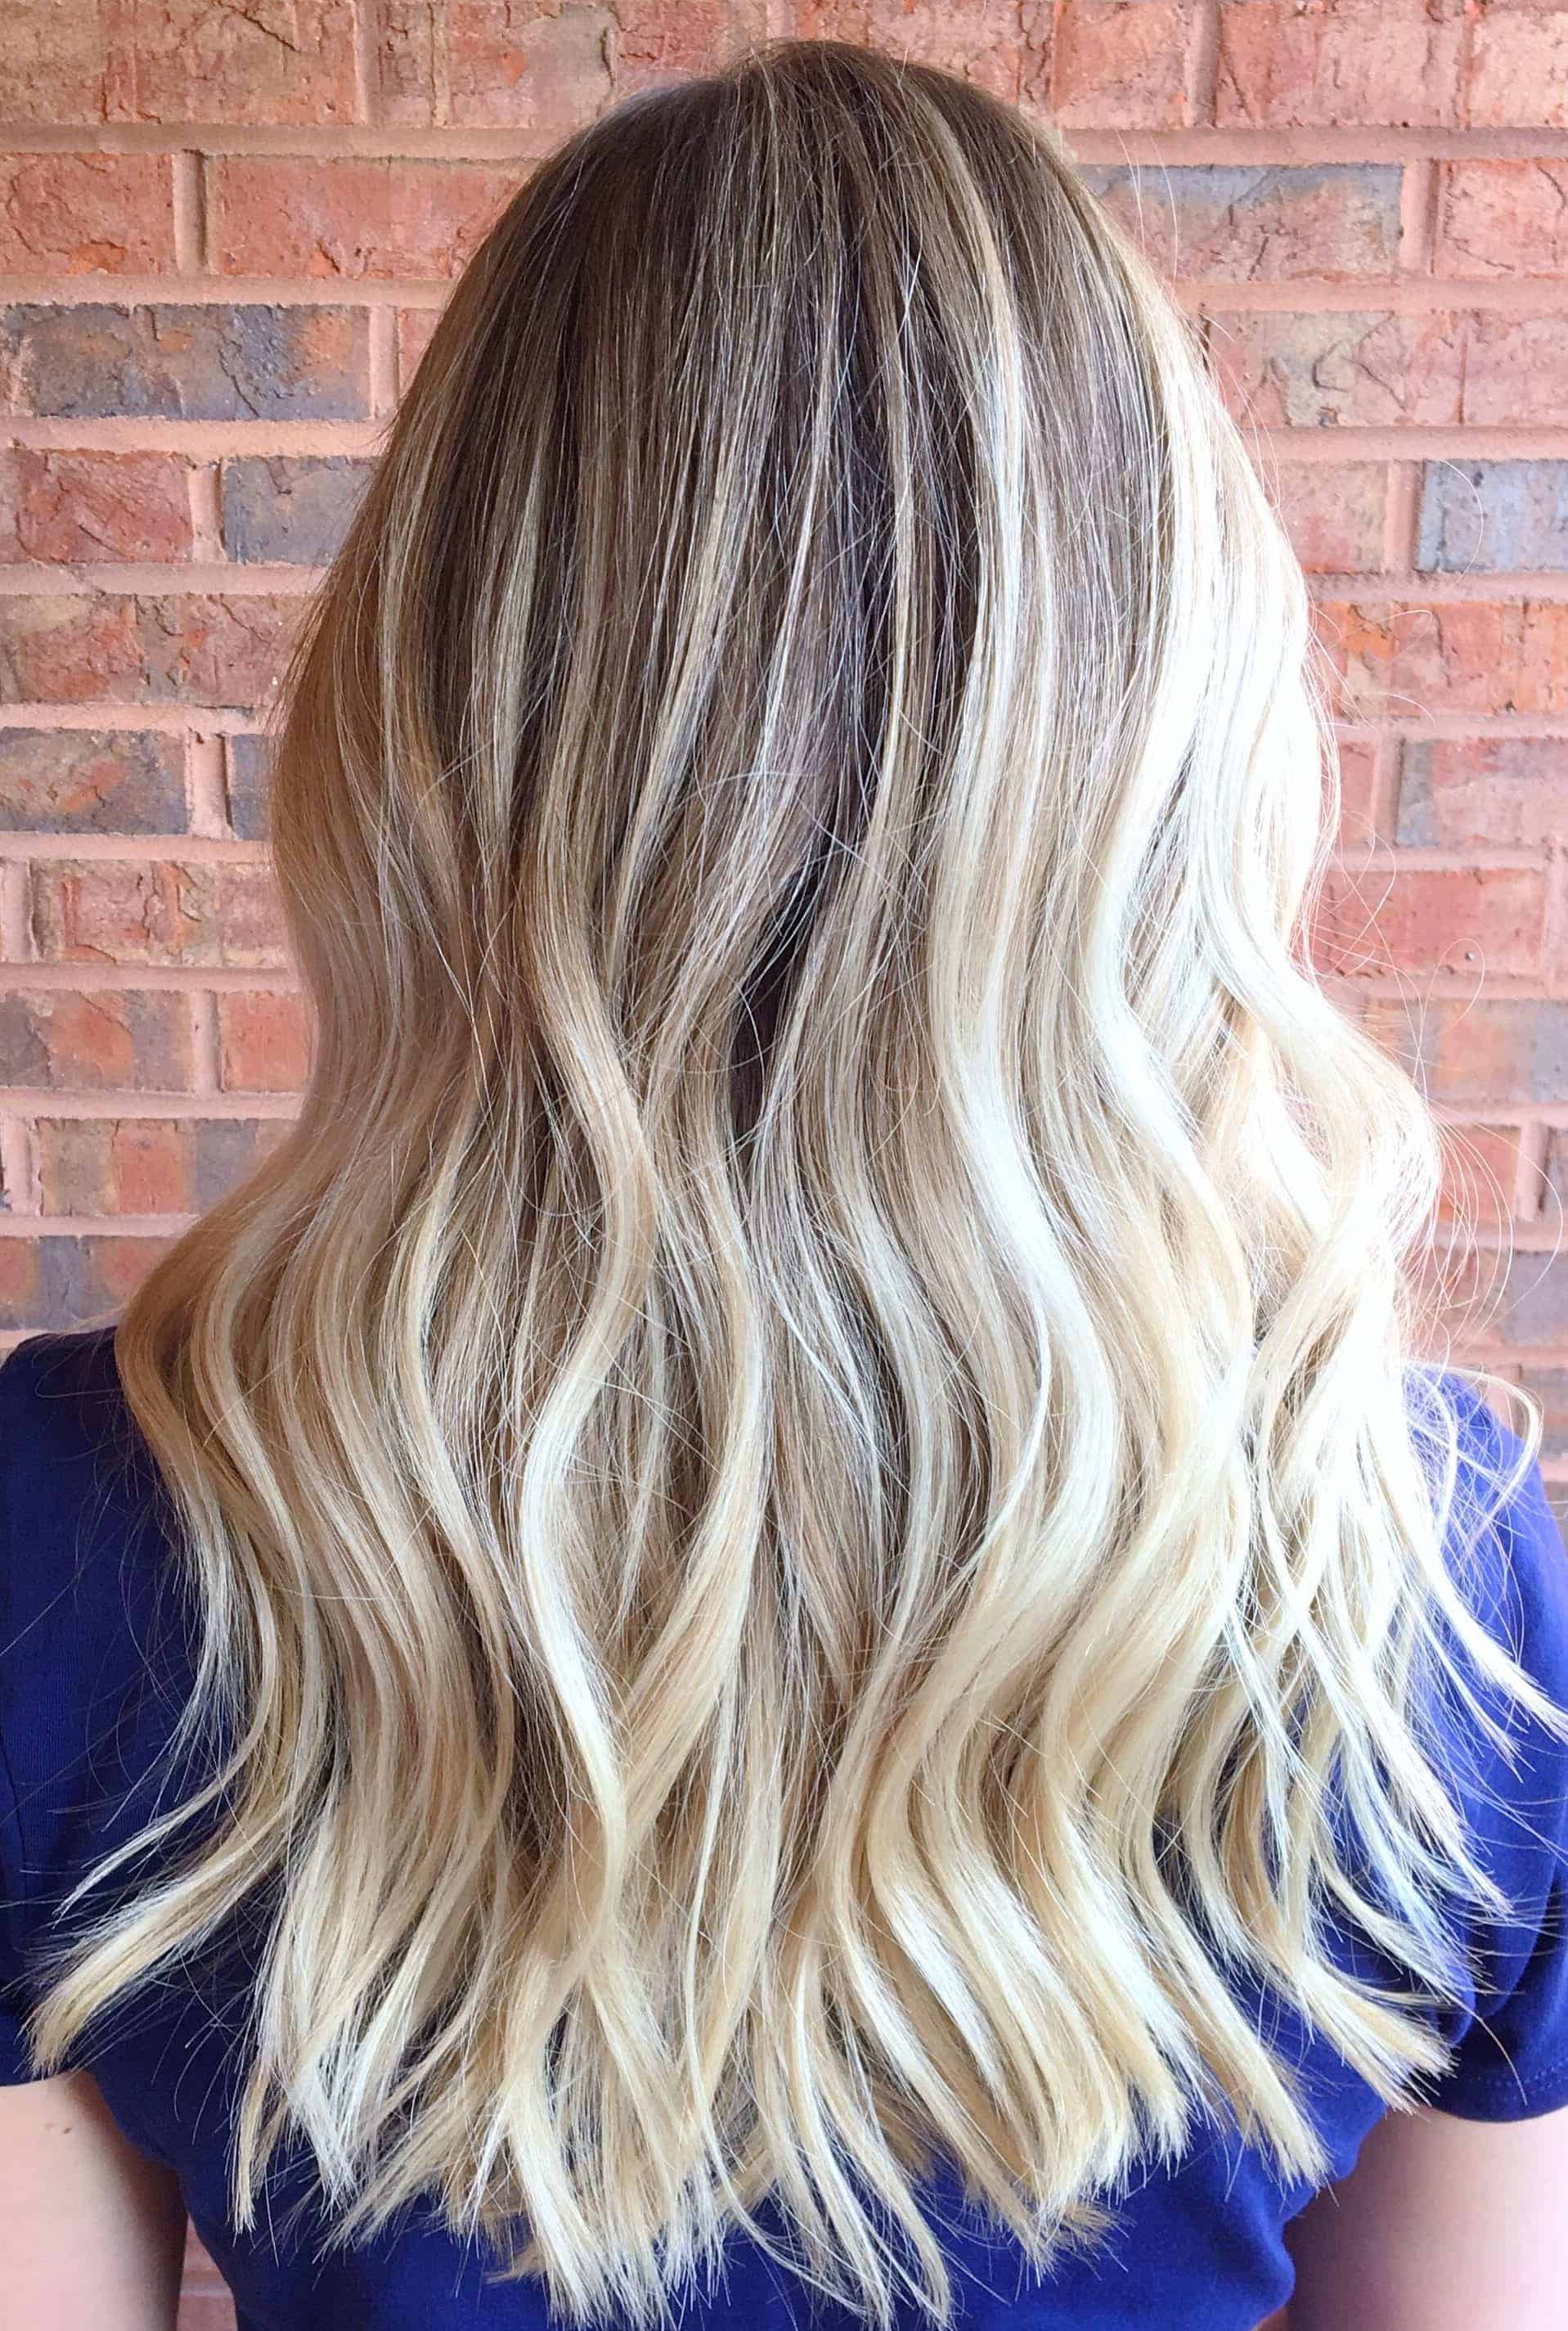 Keep your blonde hair looking beautiful and vibrant with these purple shampoos for blondes! #purpleshampoo #haircare #shampoo #blondehair